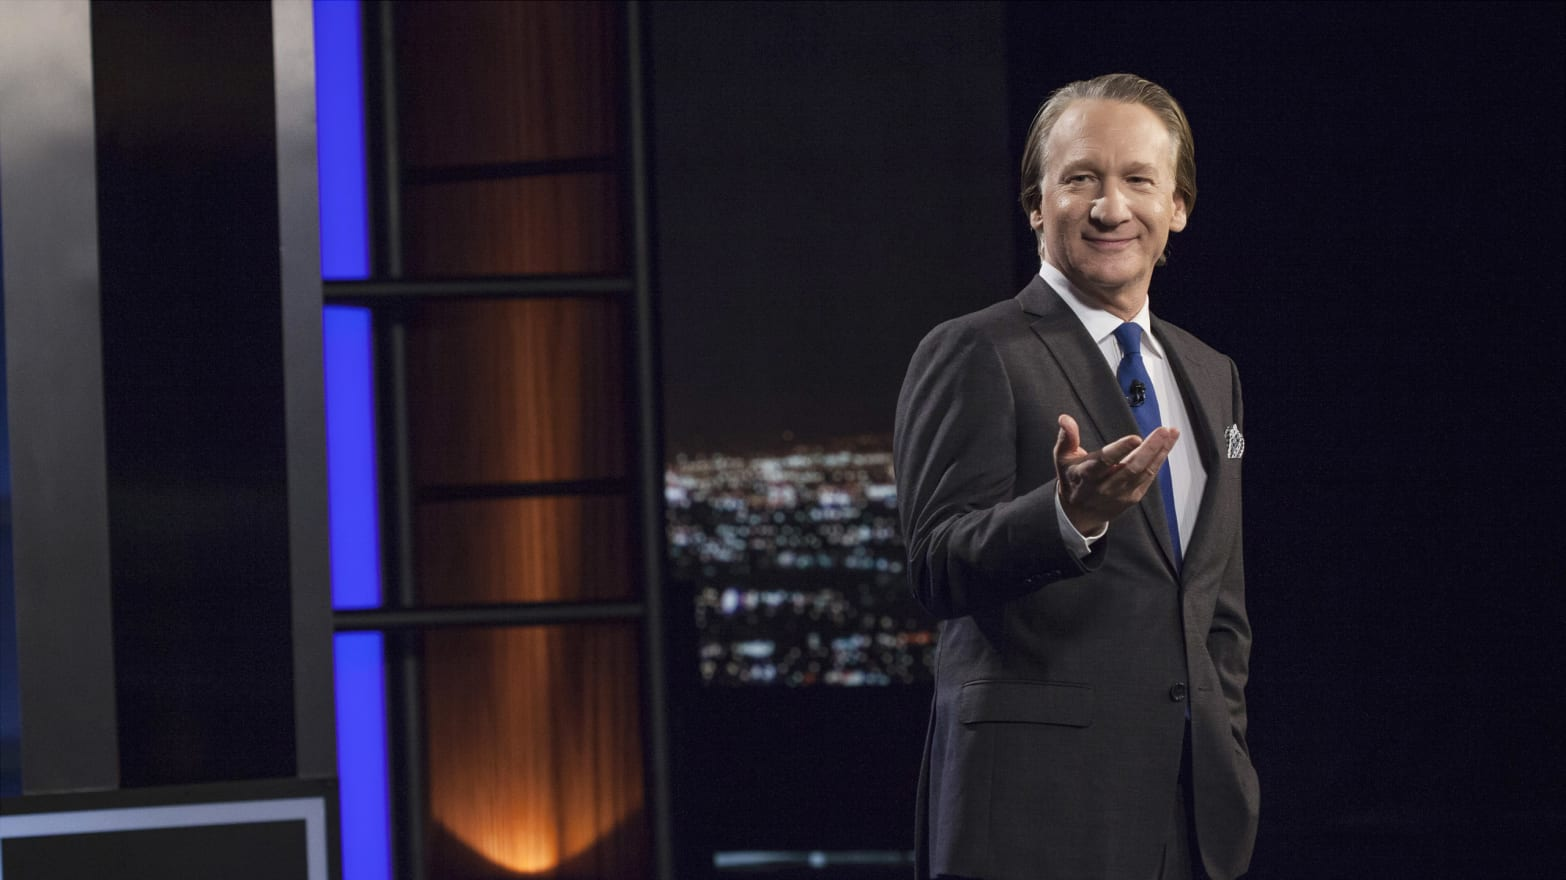 Bill Maher Compares Donald Trump to Hitler: 'Stirring Up Xenophobic Hate'